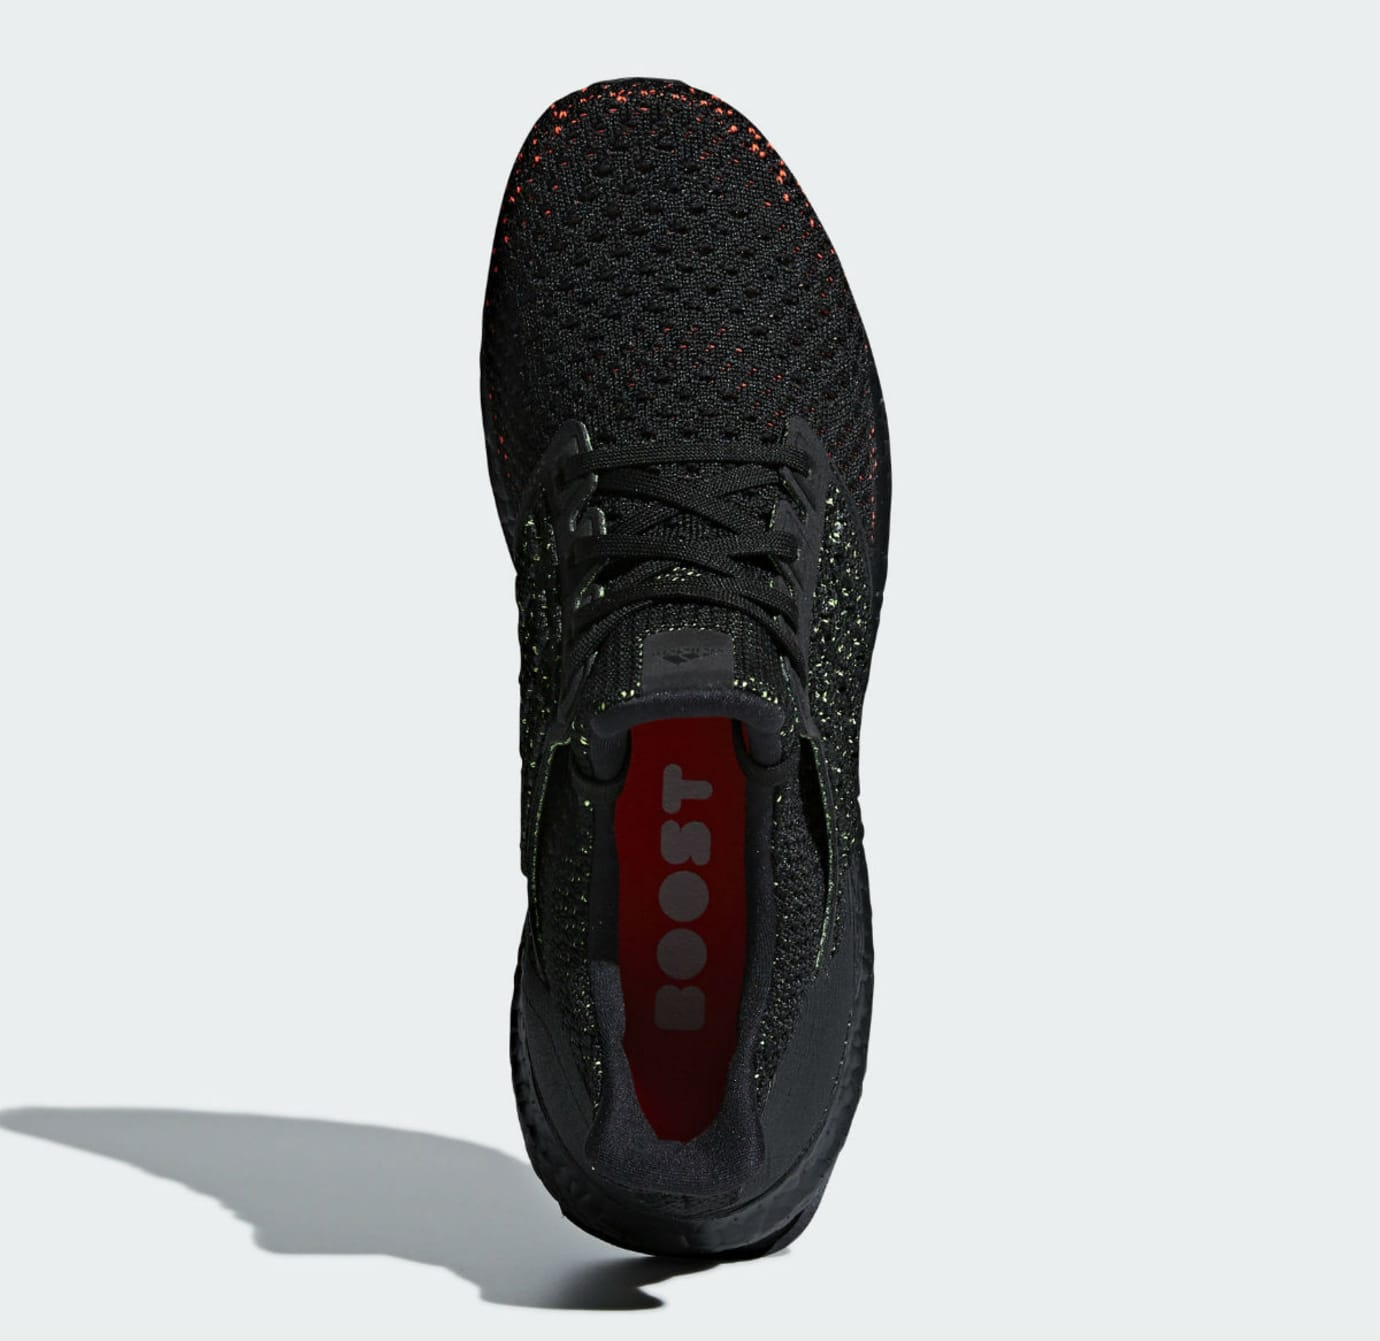 cf0564438 Image via Adidas Adidas Ultra Boost Clima Black Solar Red Release Date  AQ0482 Top